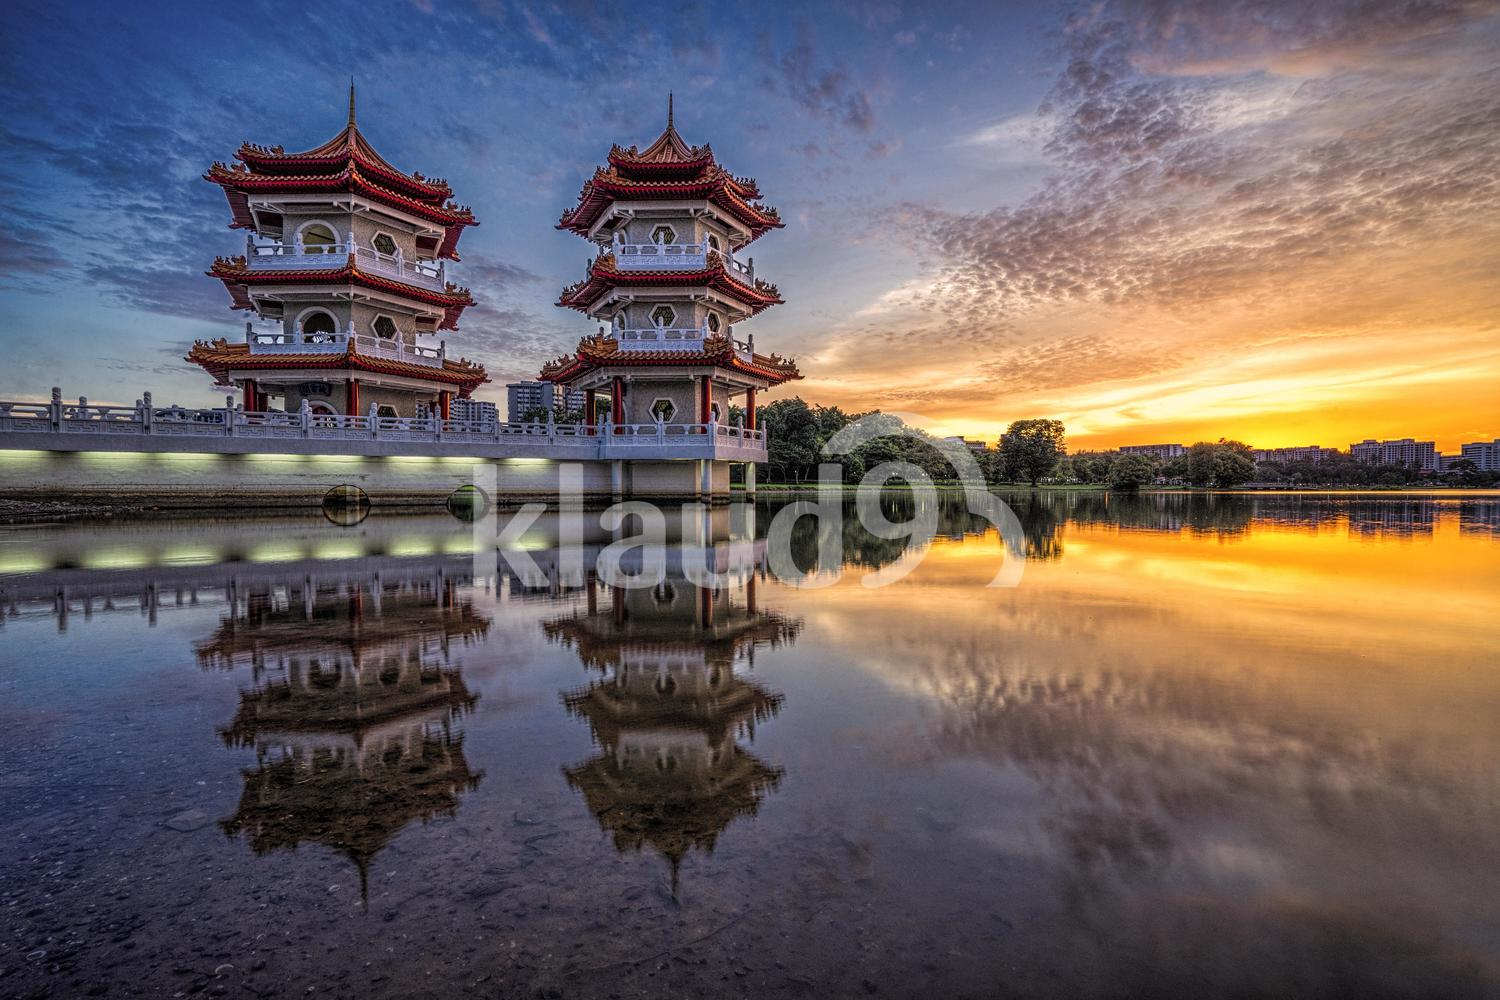 The Twin Pagodas at Chinese Garden